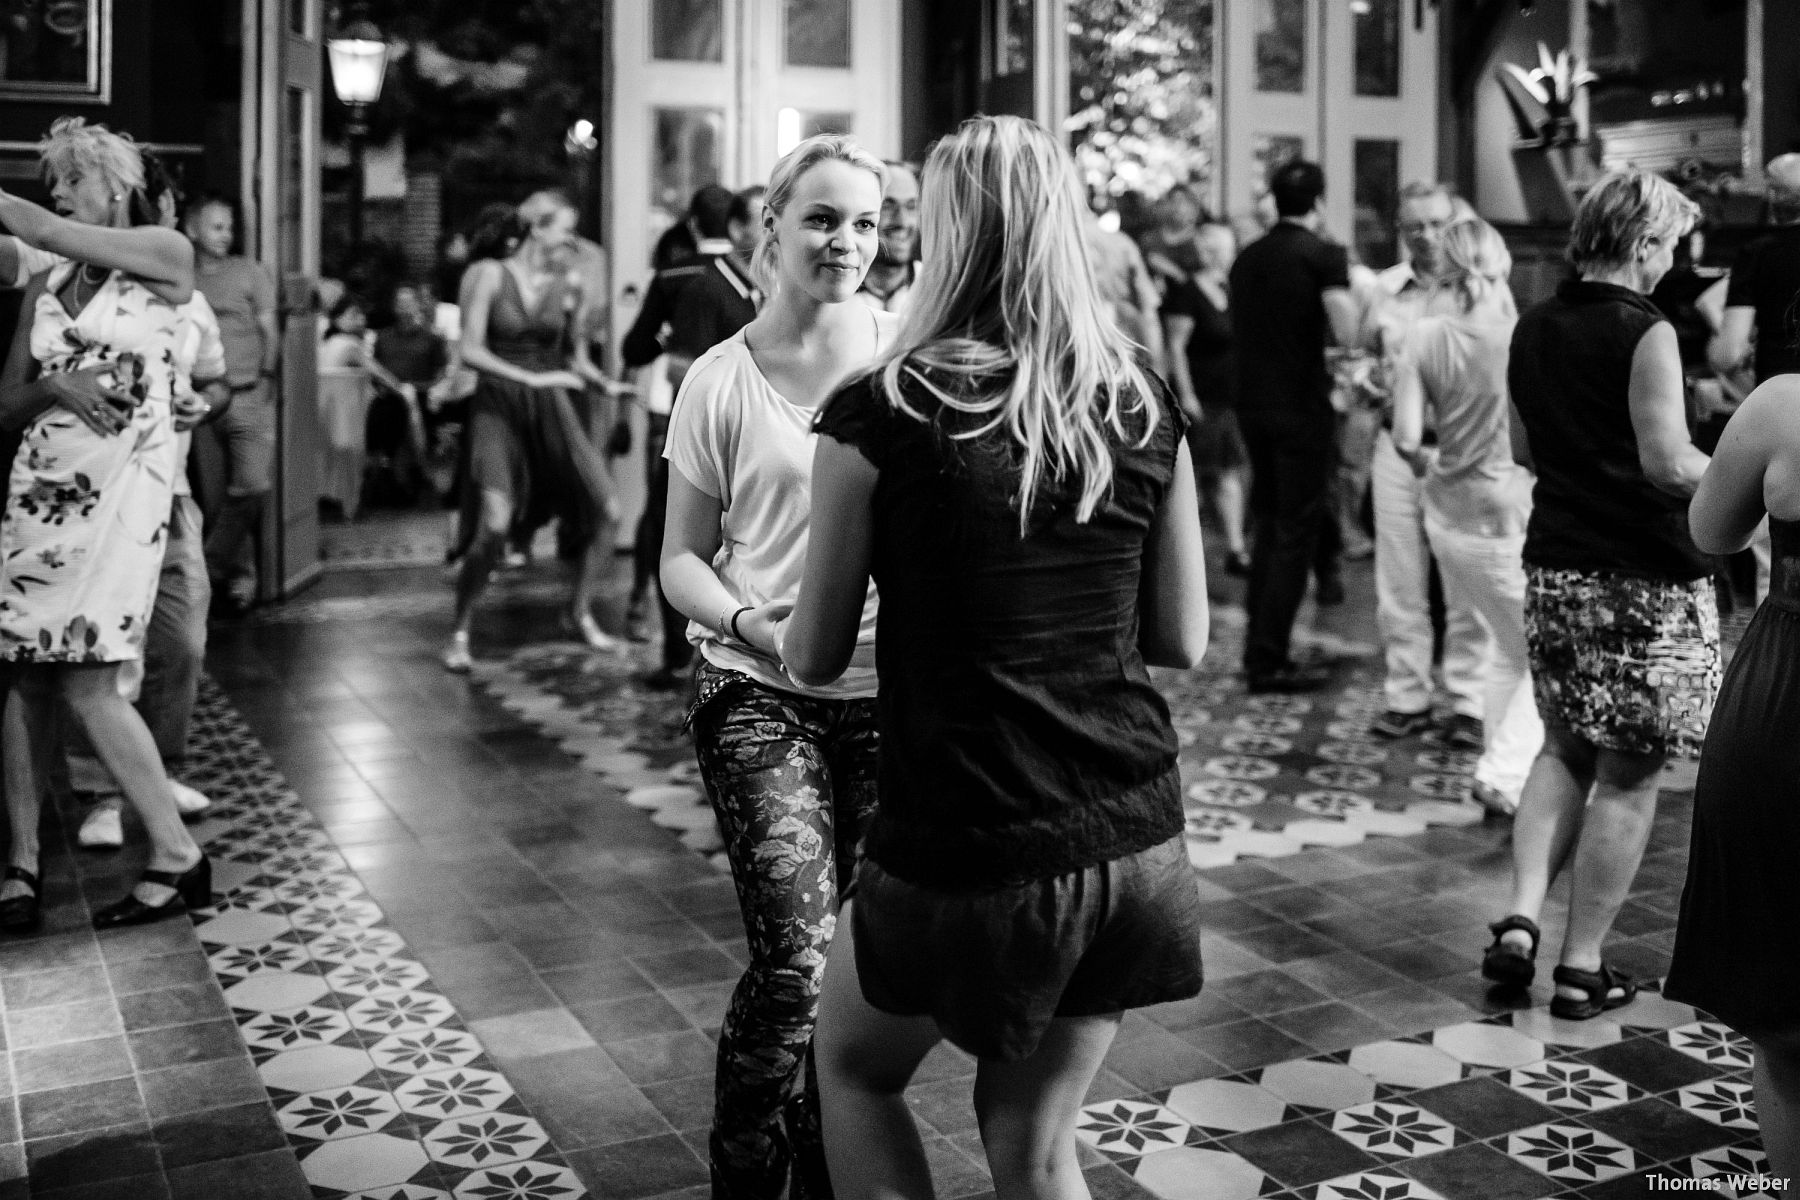 Fotograf Thomas Weber aus Oldenburg: Salsa- und Tango-Abende im Theater Laboratorium Oldenburg (20)